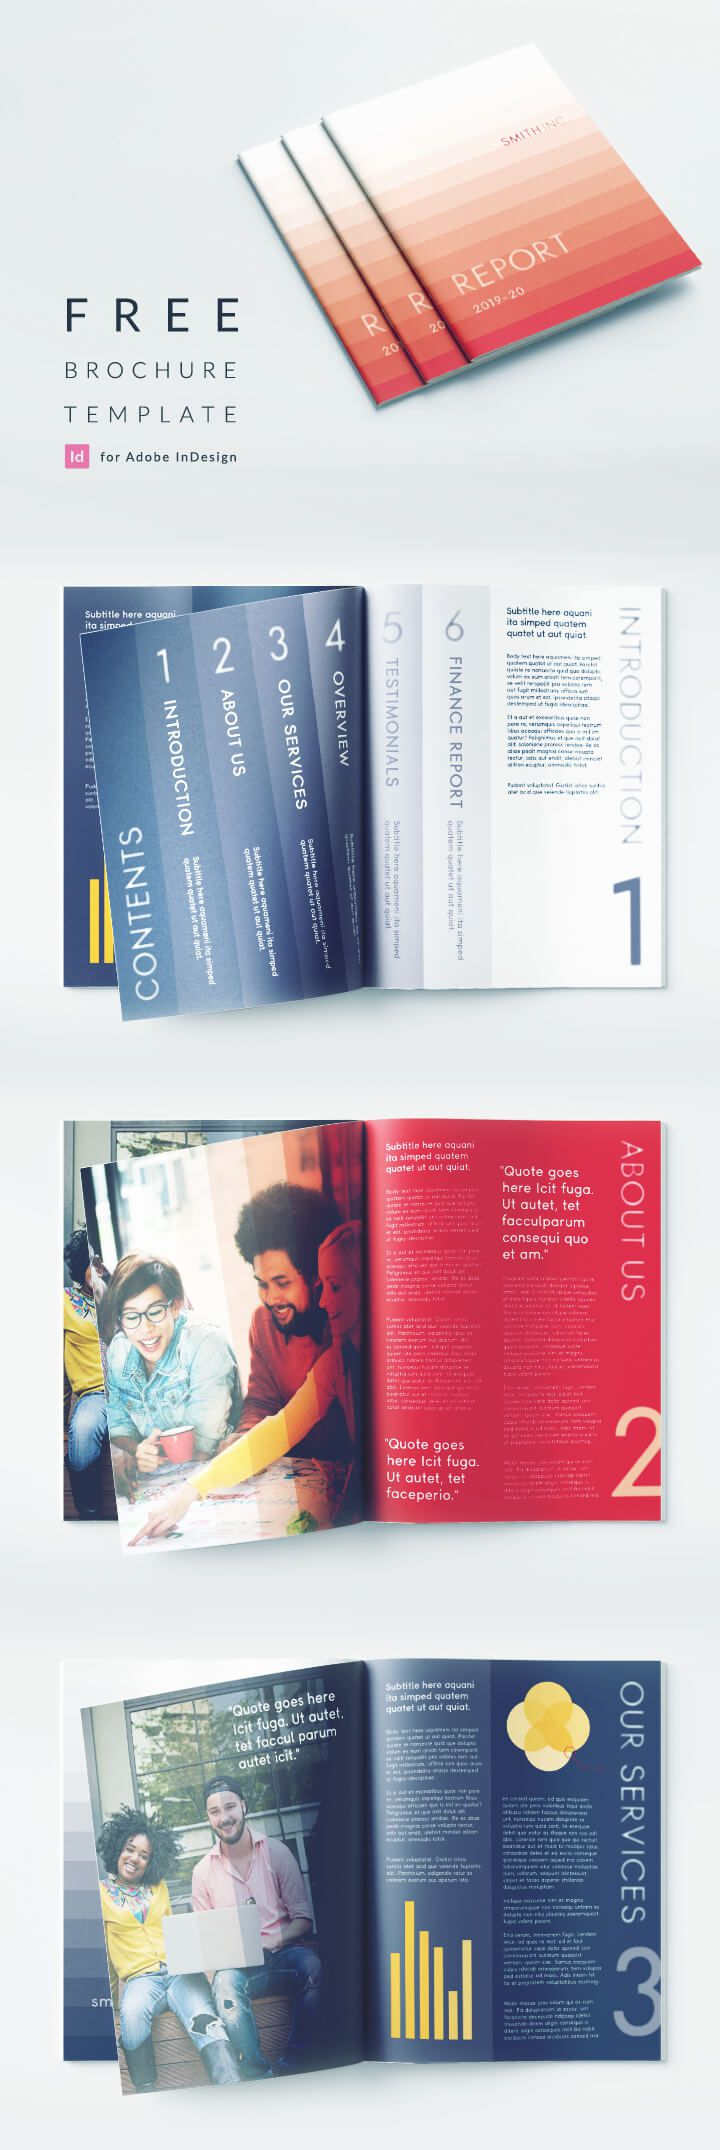 005 Outstanding Adobe Indesign Brochure Template Free Download High Definition Full